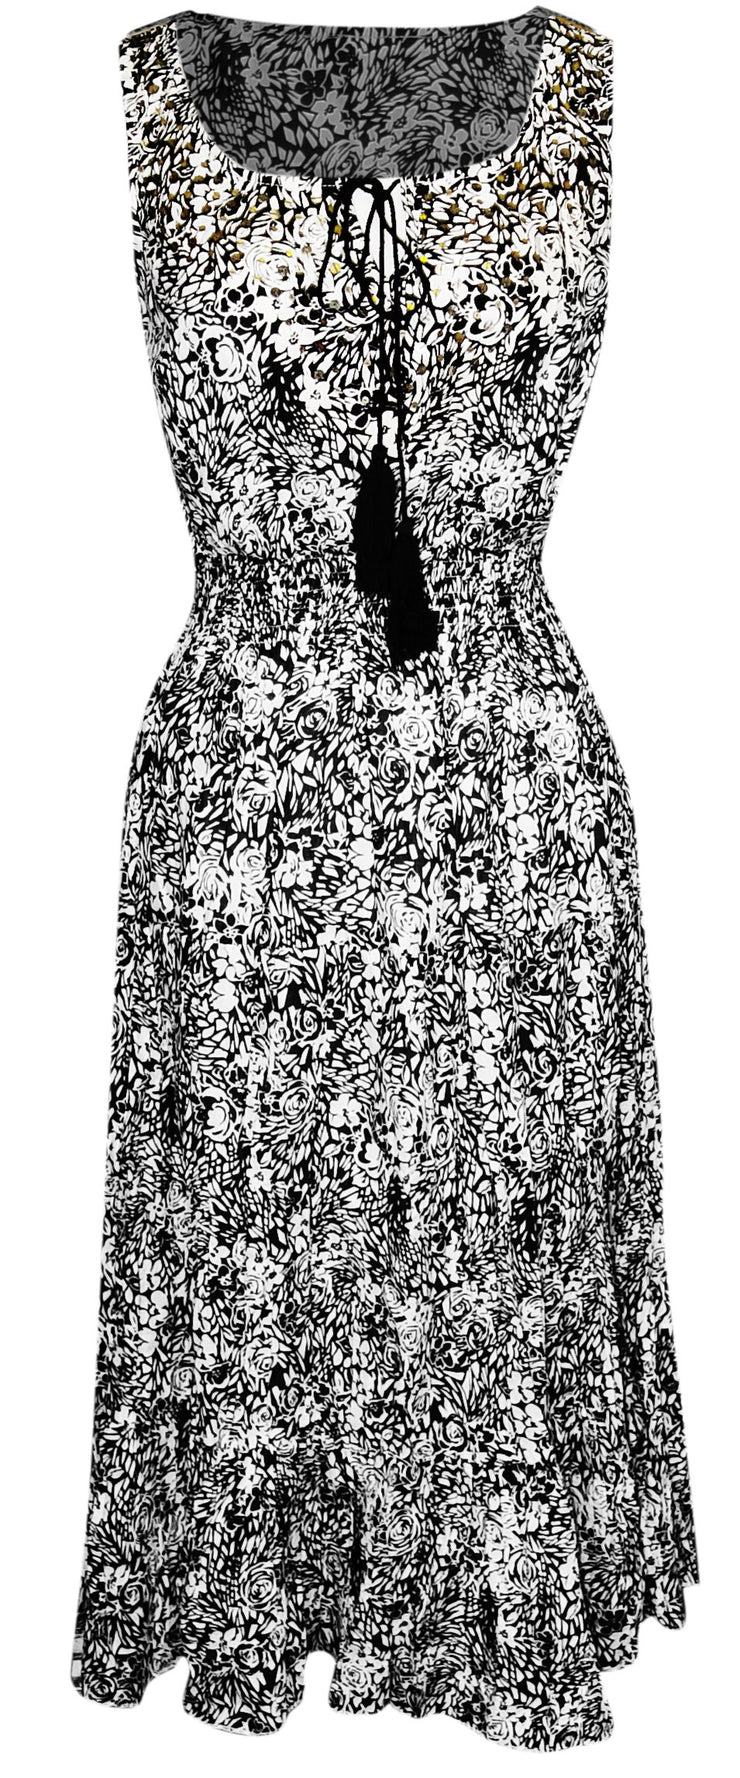 A1569-Floral-Sparkle-Dress-Black-Lar-KL